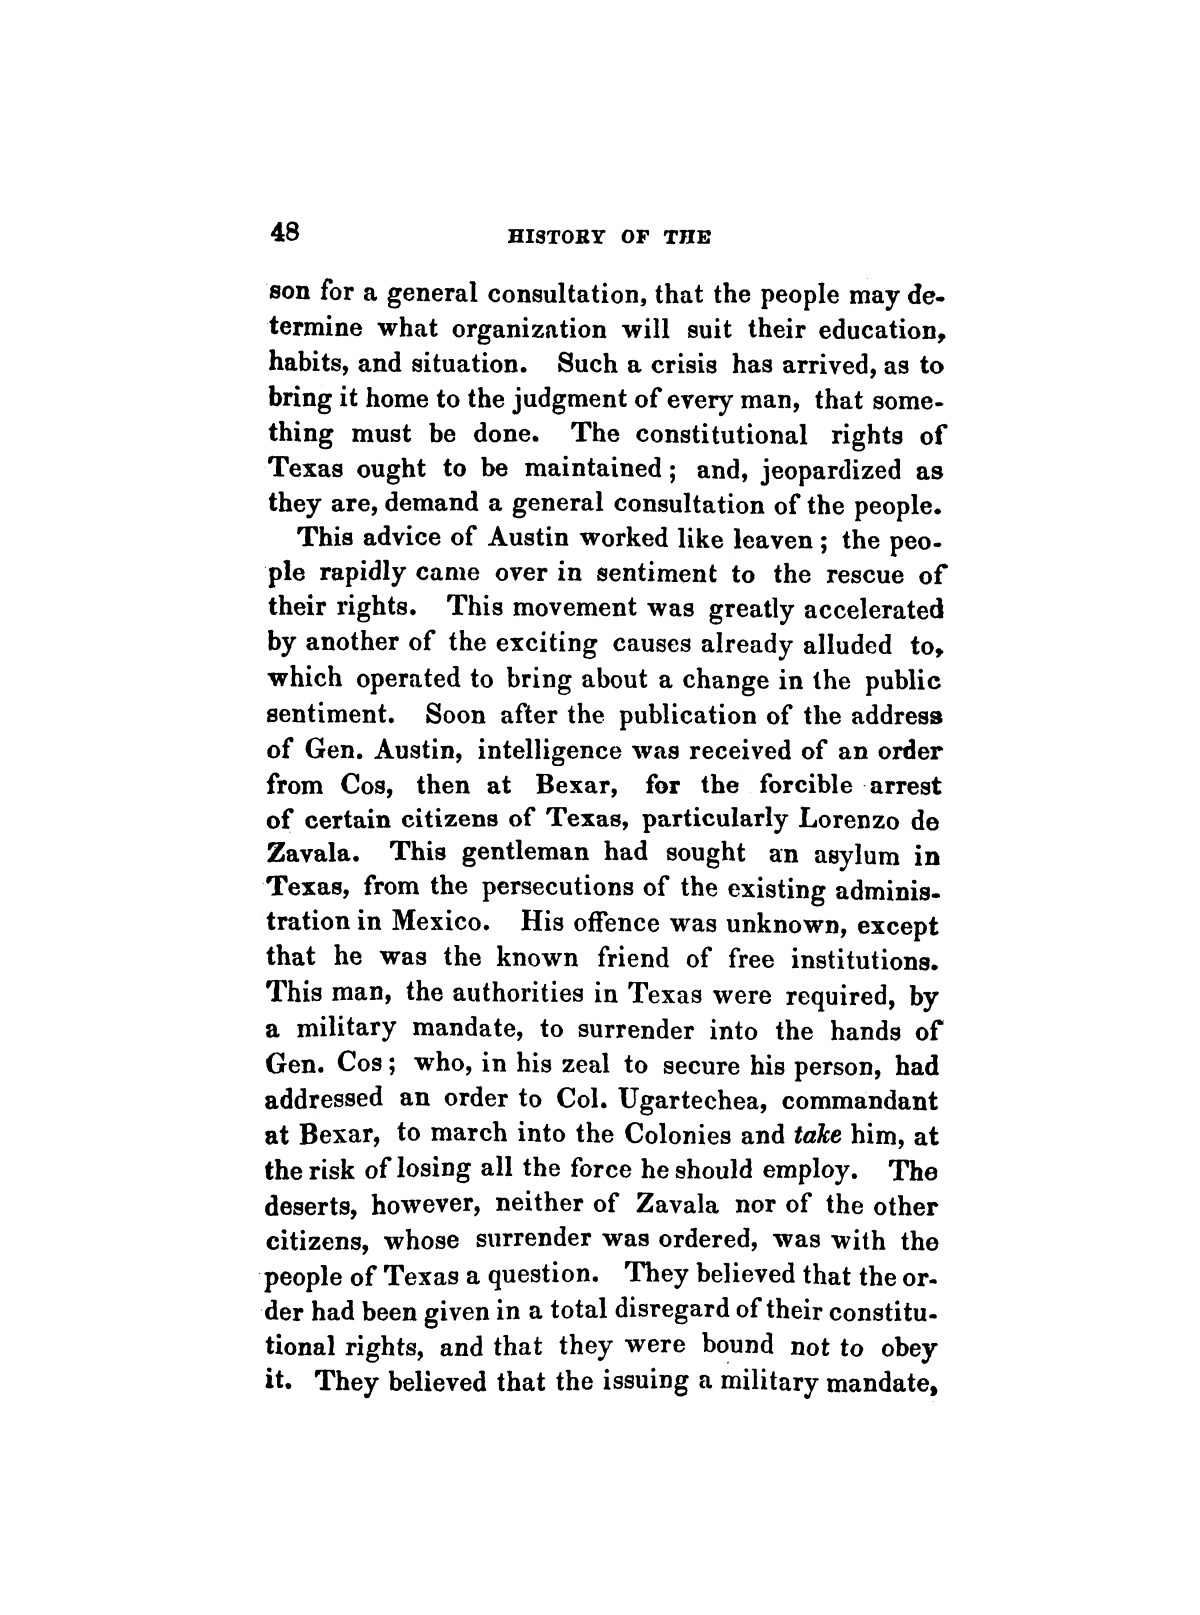 History of the revolution in Texas, particularly of the war of 1835 & '36; together with the latest geographical, topographical, and statistical accounts of the country, from the most authentic sources. Also, an appendix. By the Rev. C. Newell.                                                                                                      [Sequence #]: 60 of 227